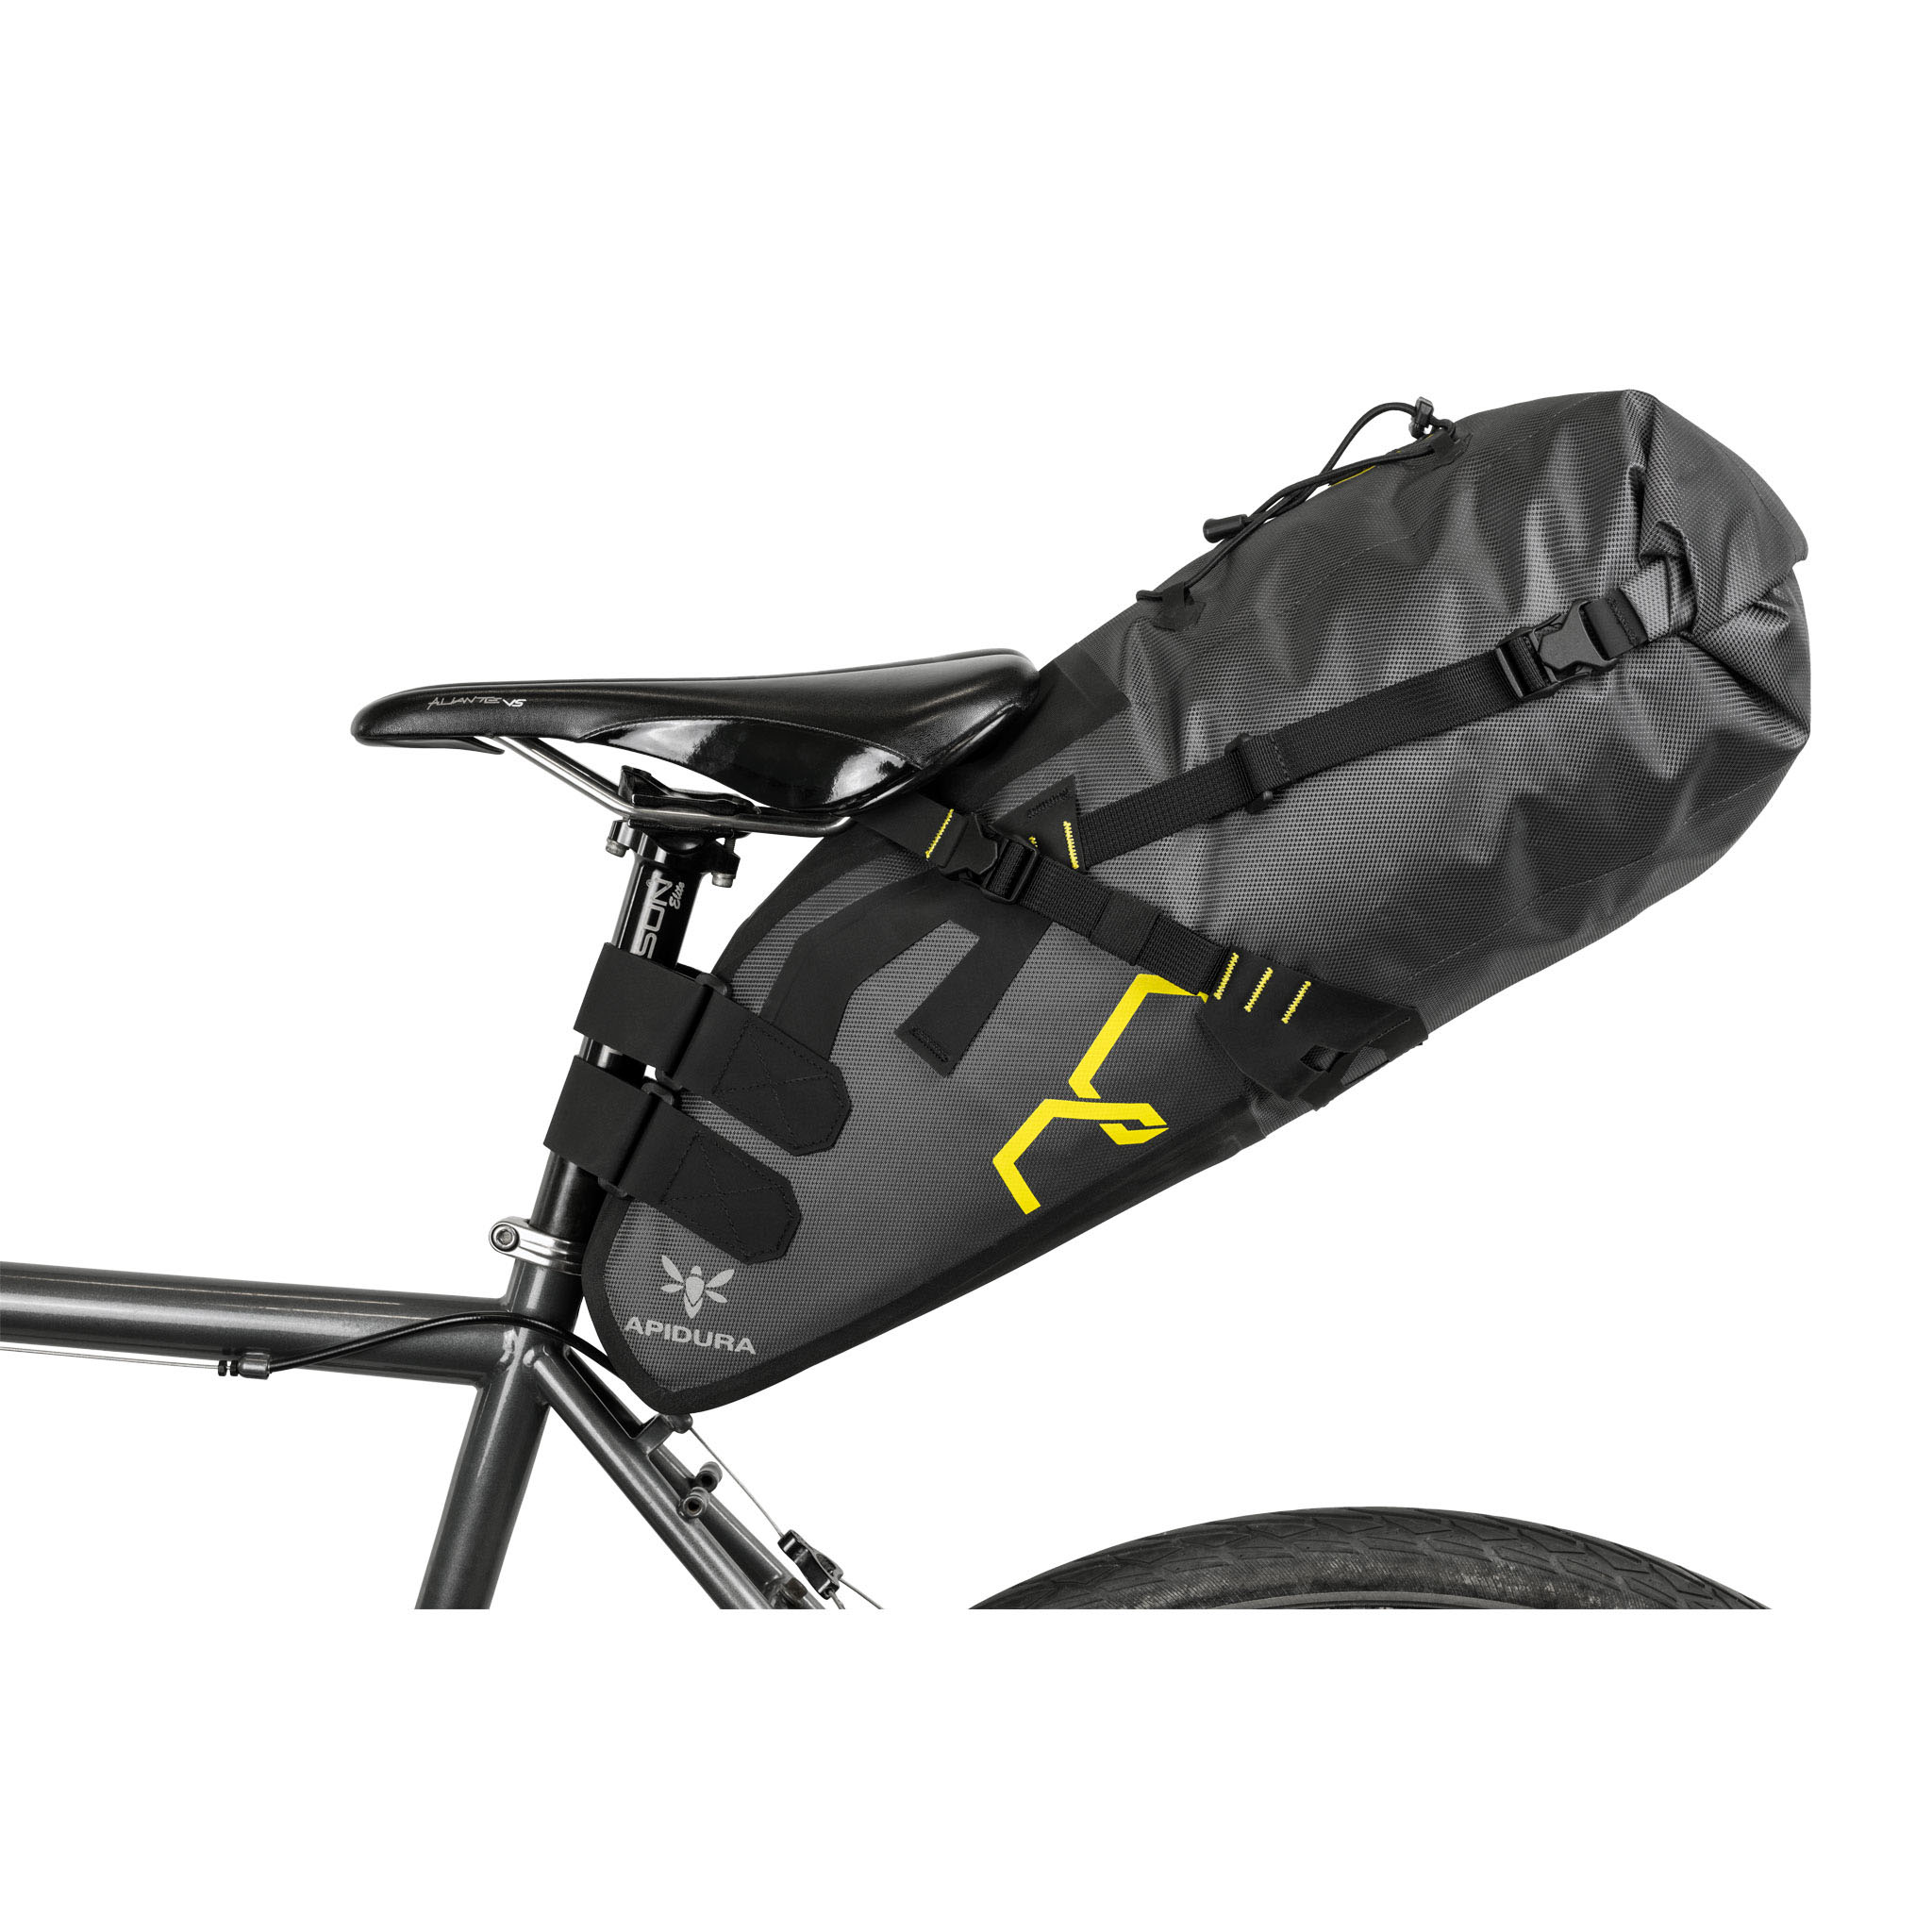 Apidura Expedition Saddle Pack, large - grey/black